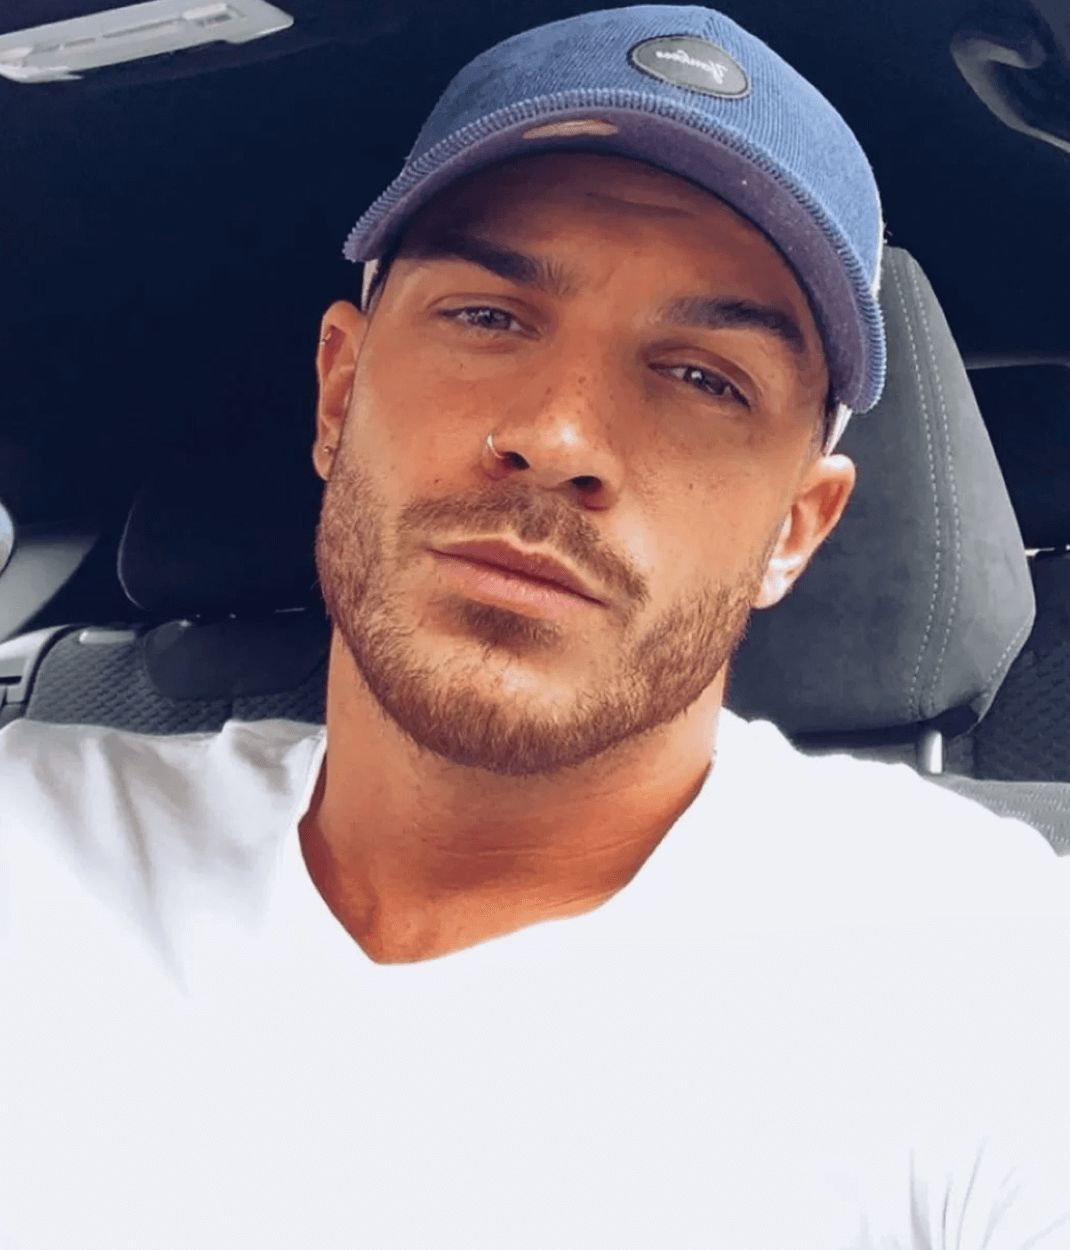 Image may contain: Casa Amor cast, Casa Amor, Love Island, Dan Rose, contestant, cast, Islander, new, boy, Instagram, age, job, Cap, Hat, Headrest, Clothing, Apparel, Face, Person, Human, Cushion